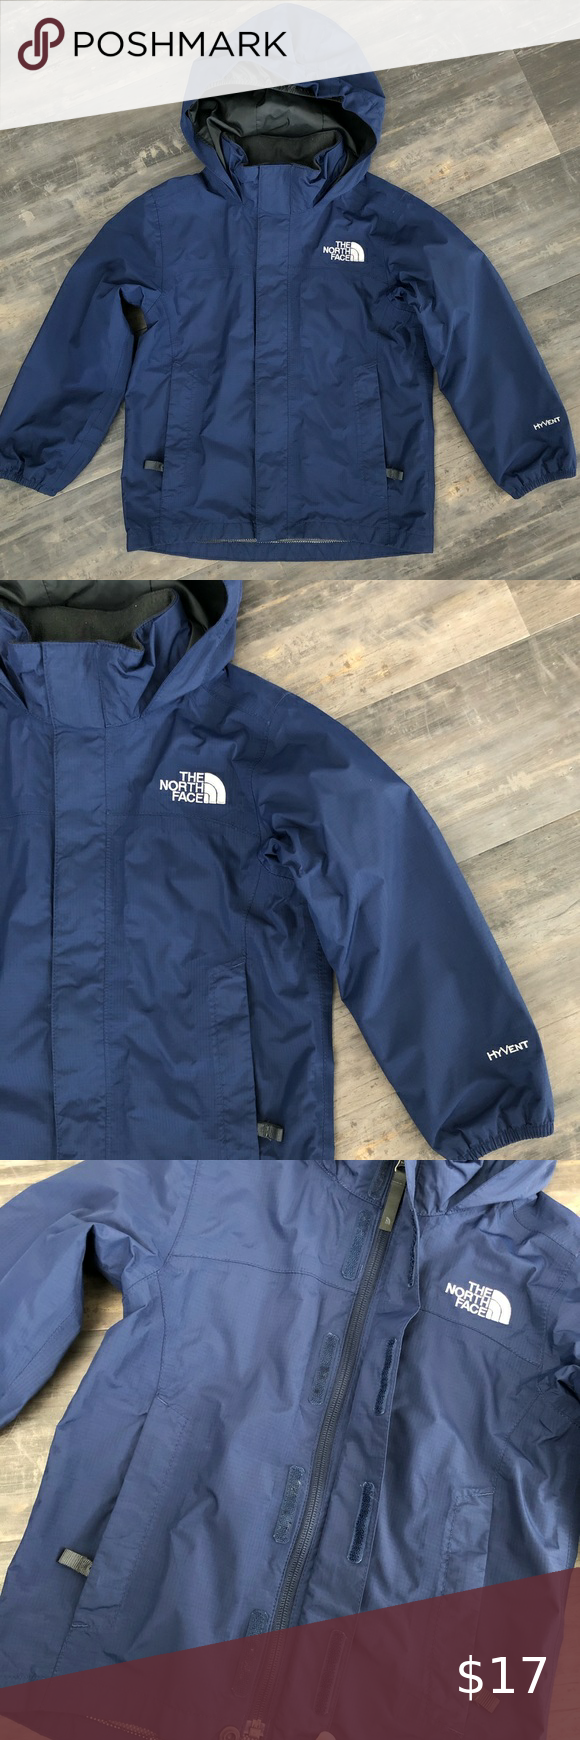 The North Face Hyvent The North Face Wind Breaker Rain Jacket In Navy Blue Size Is Xs Which Is A 6 Days Bo North Face Jacket North Face Hyvent The North Face [ 1740 x 580 Pixel ]